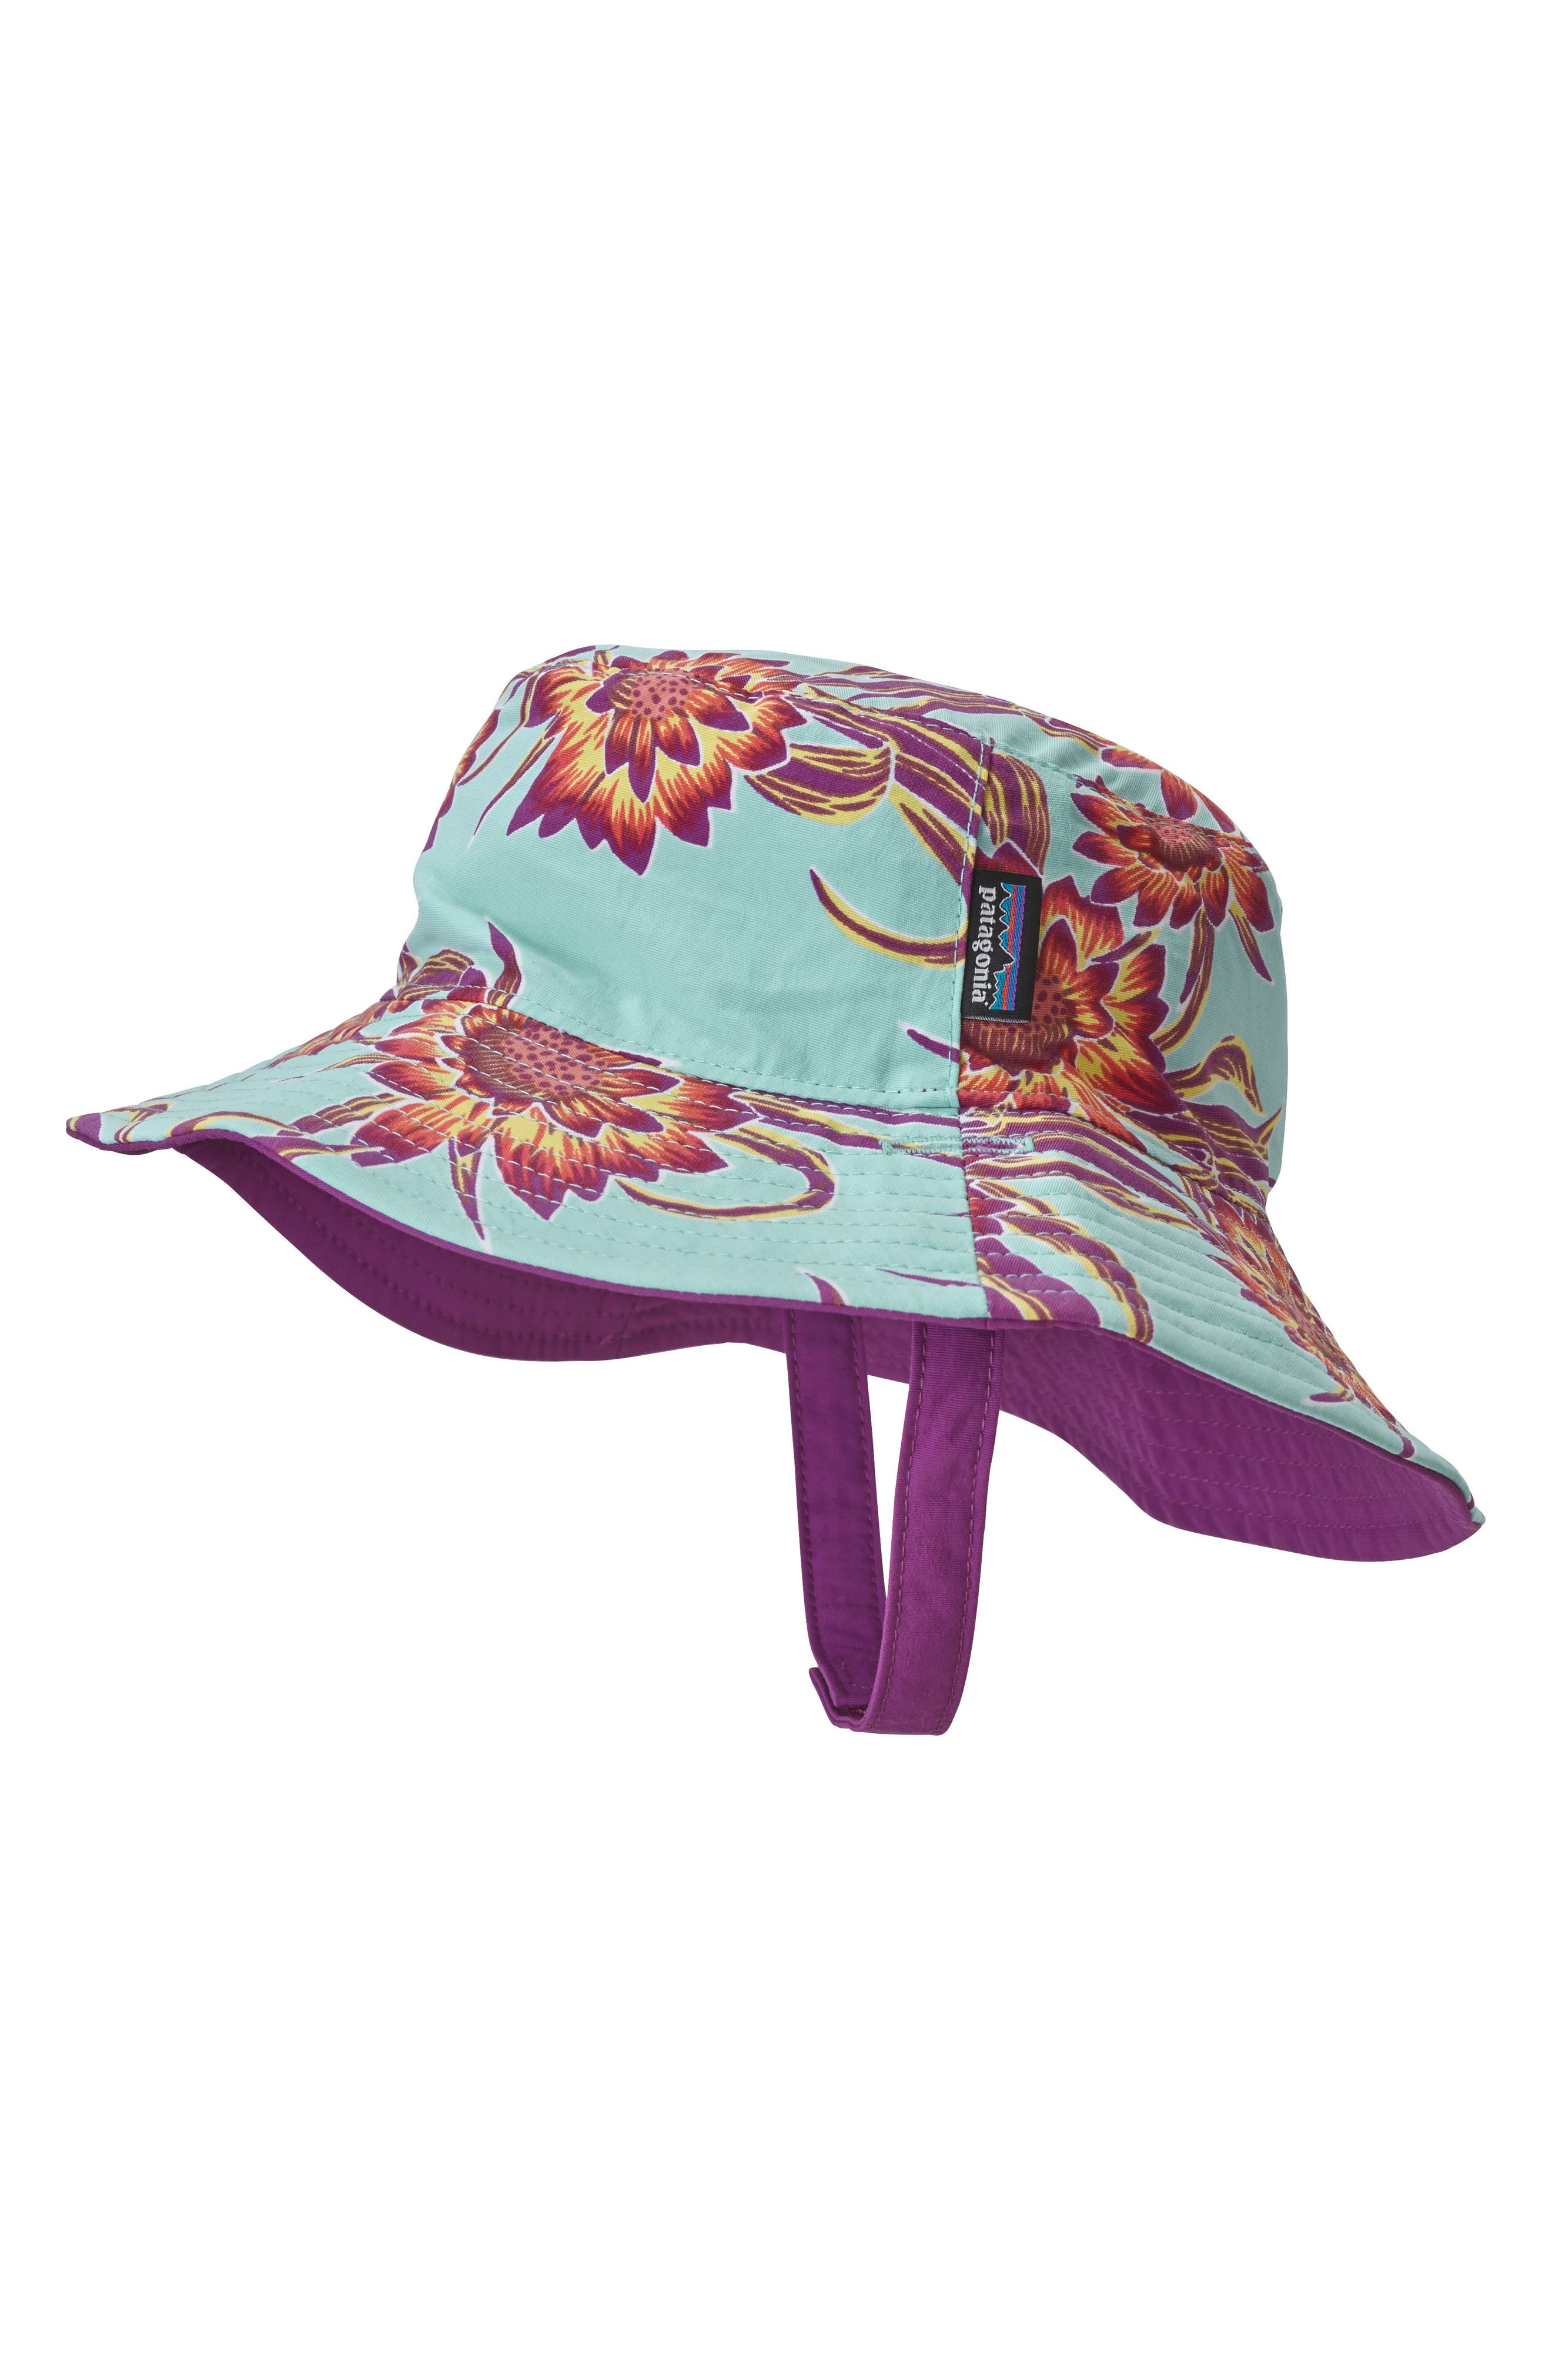 Bucket Hat,                             Alternate thumbnail 2, color,                             Cereus Flower/ Purple